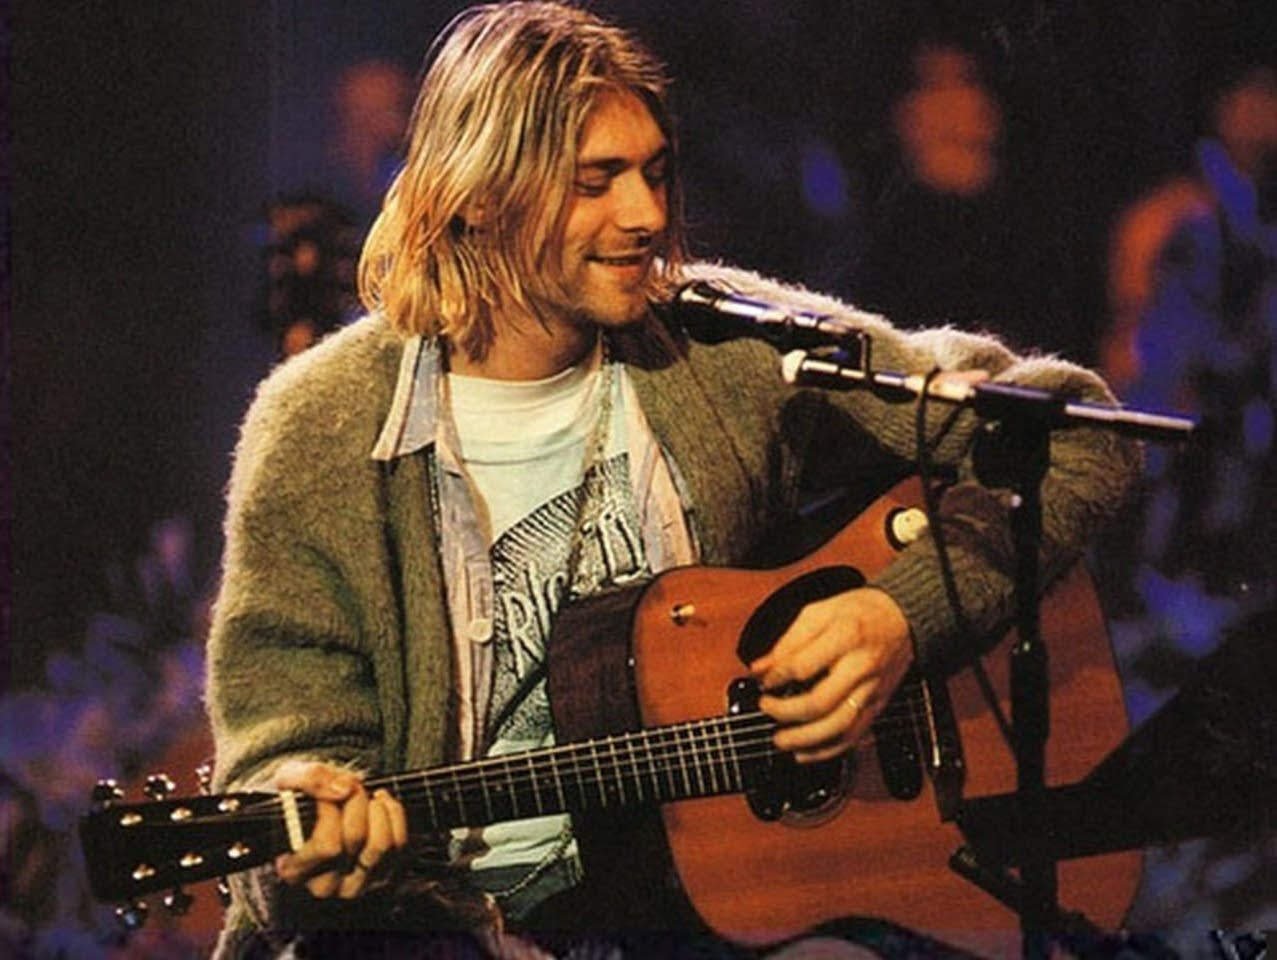 """Today in Music History: MTV aired Nirvana's """"Unplugged"""" session 